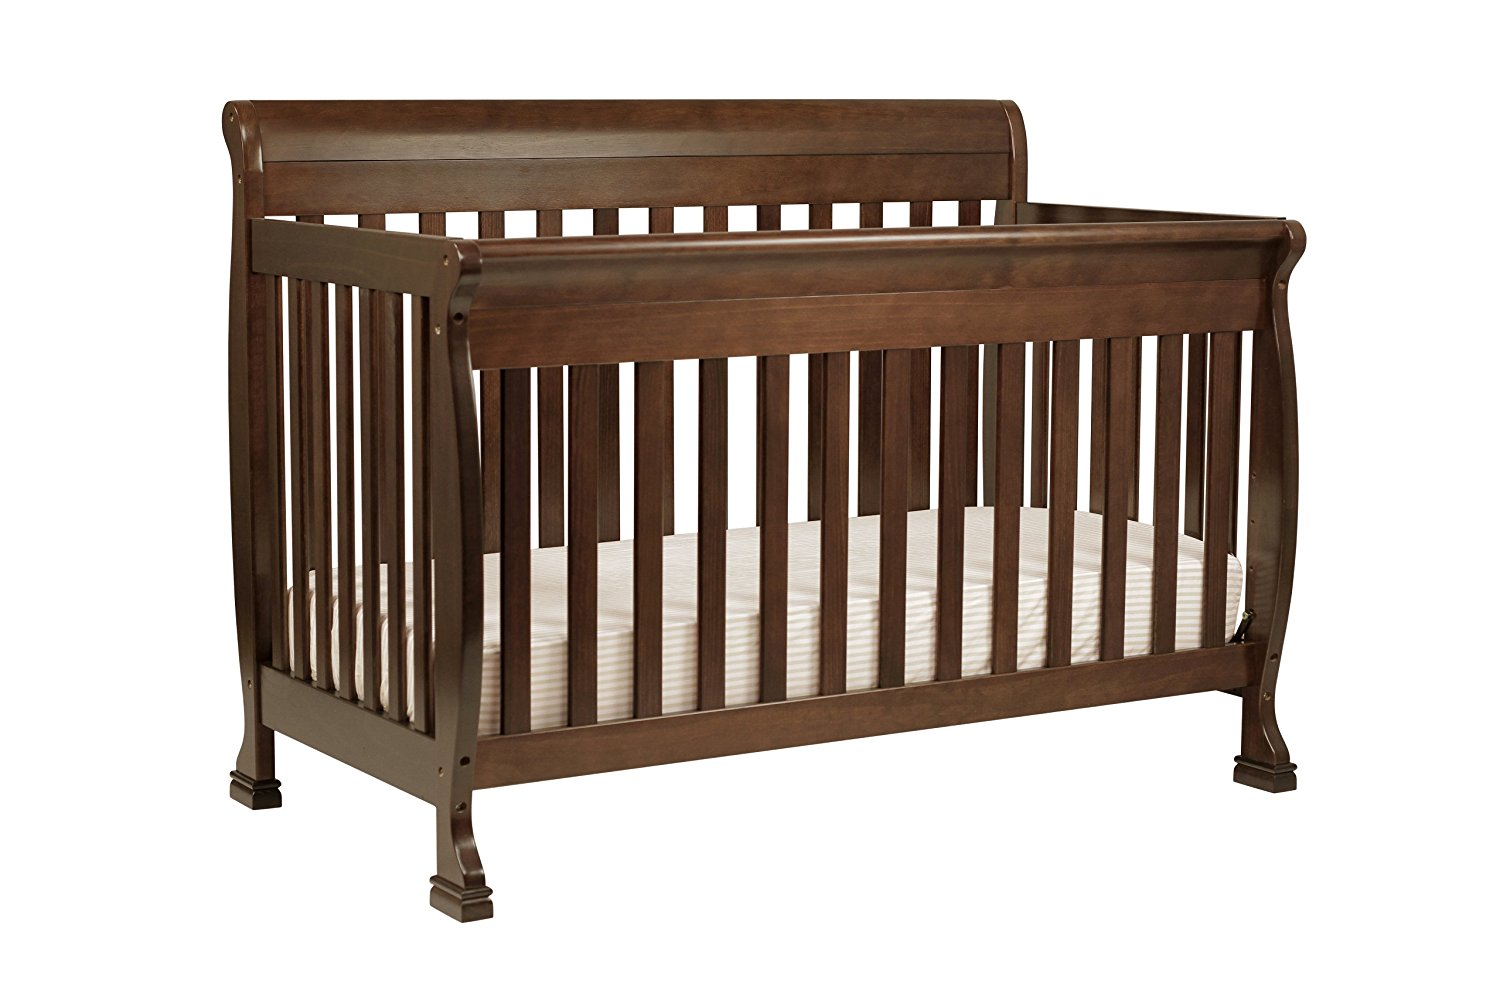 Charming Baby Cache Heritage Lifetime Convertible Crib for Best Baby Crib Choice: Cribs Babies R Us | Cache Montana Crib | Baby Cache Heritage Lifetime Convertible Crib